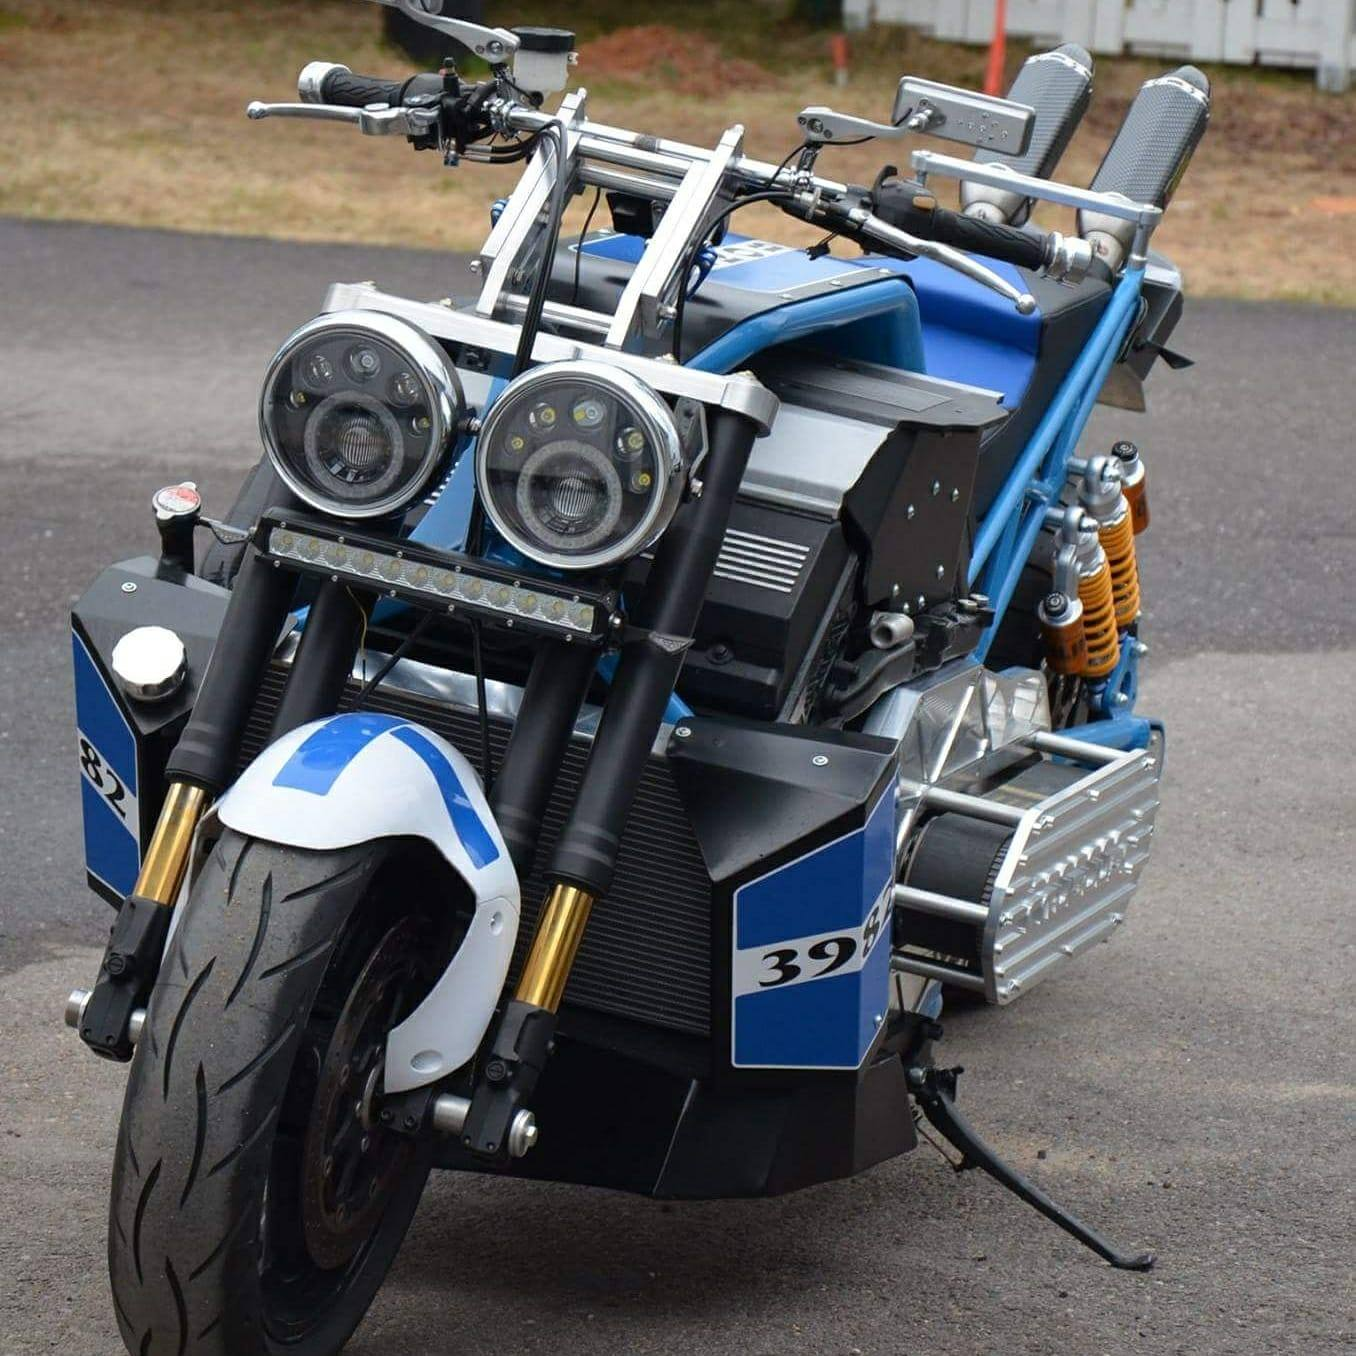 custom motorcycle with a twin turbo bmw v8 update 3. Black Bedroom Furniture Sets. Home Design Ideas